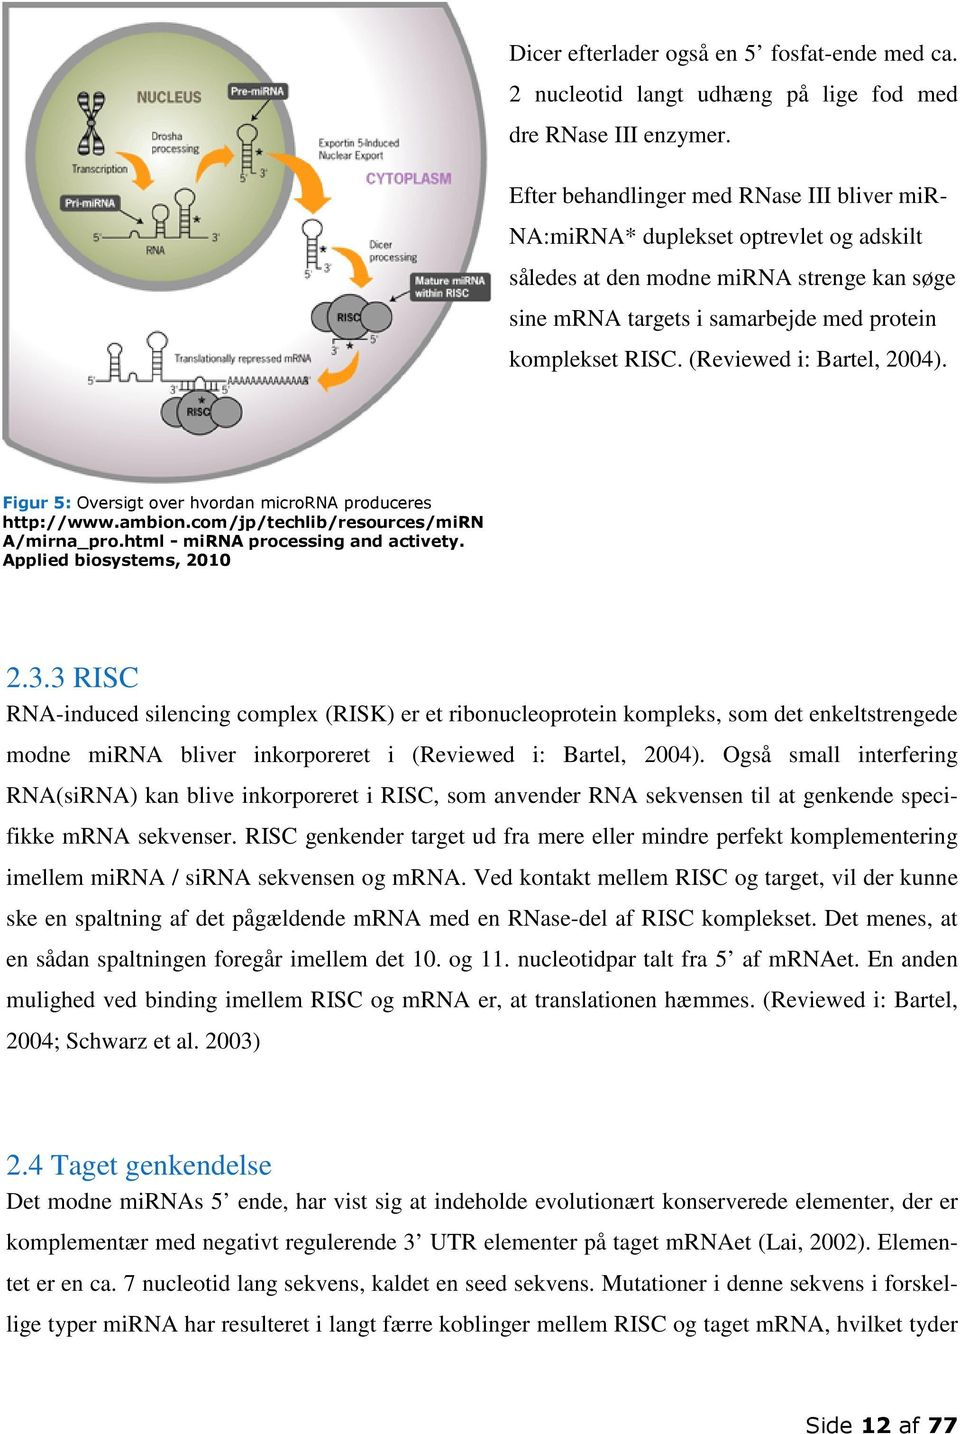 (Reviewed i: Bartel, 2004). Figur 5: Oversigt over hvordan microrna produceres http://www.ambion.com/jp/techlib/resources/mirn A/mirna_pro.html - mirna processing and activety.